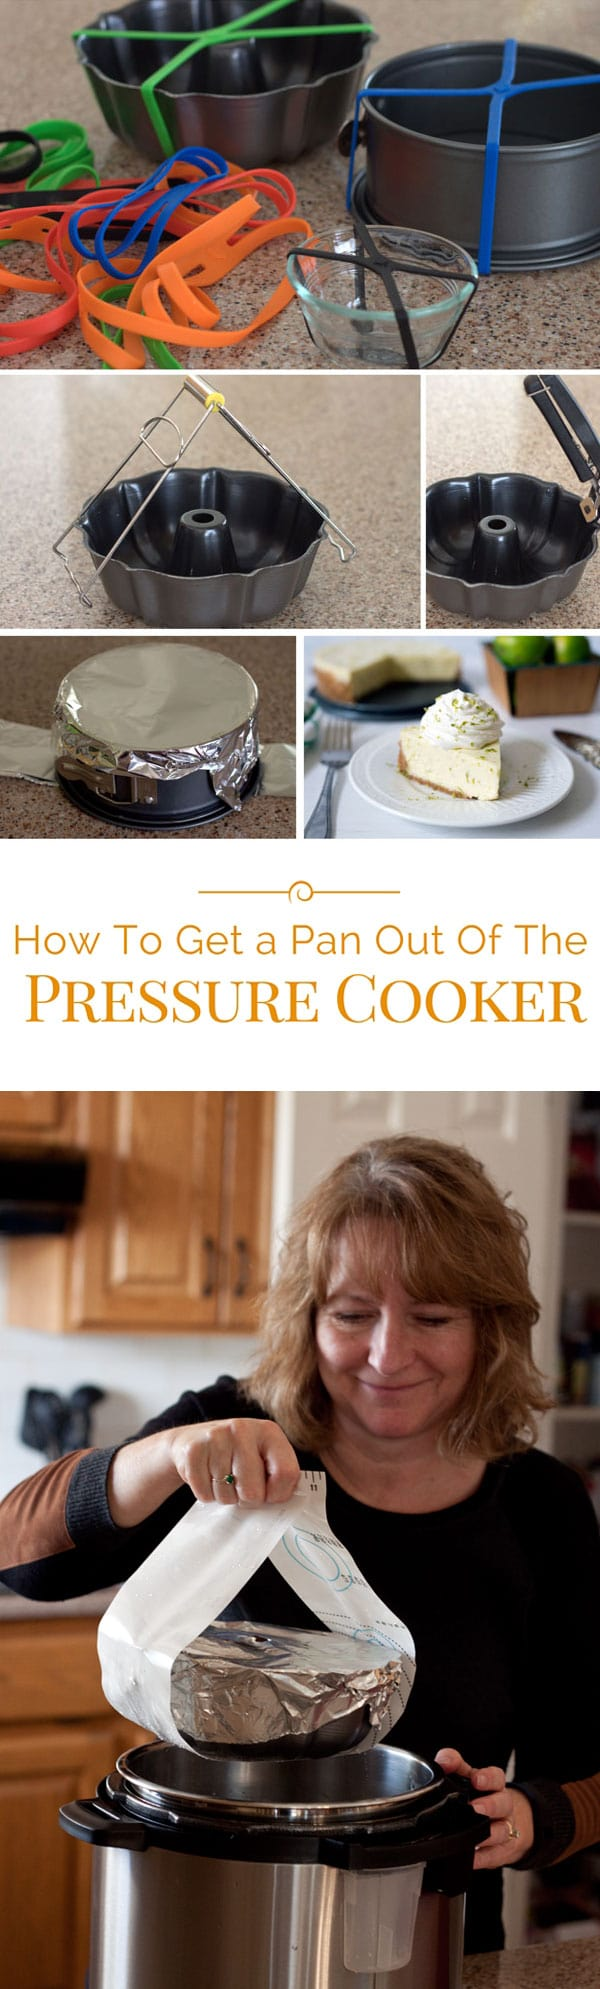 Need to know how to get a pan out of the pressure cooker? Using electric pressure cookers and multi-cookers like an Instant Pot is easy, and removing a pan from a pressure cooker is easy, too!